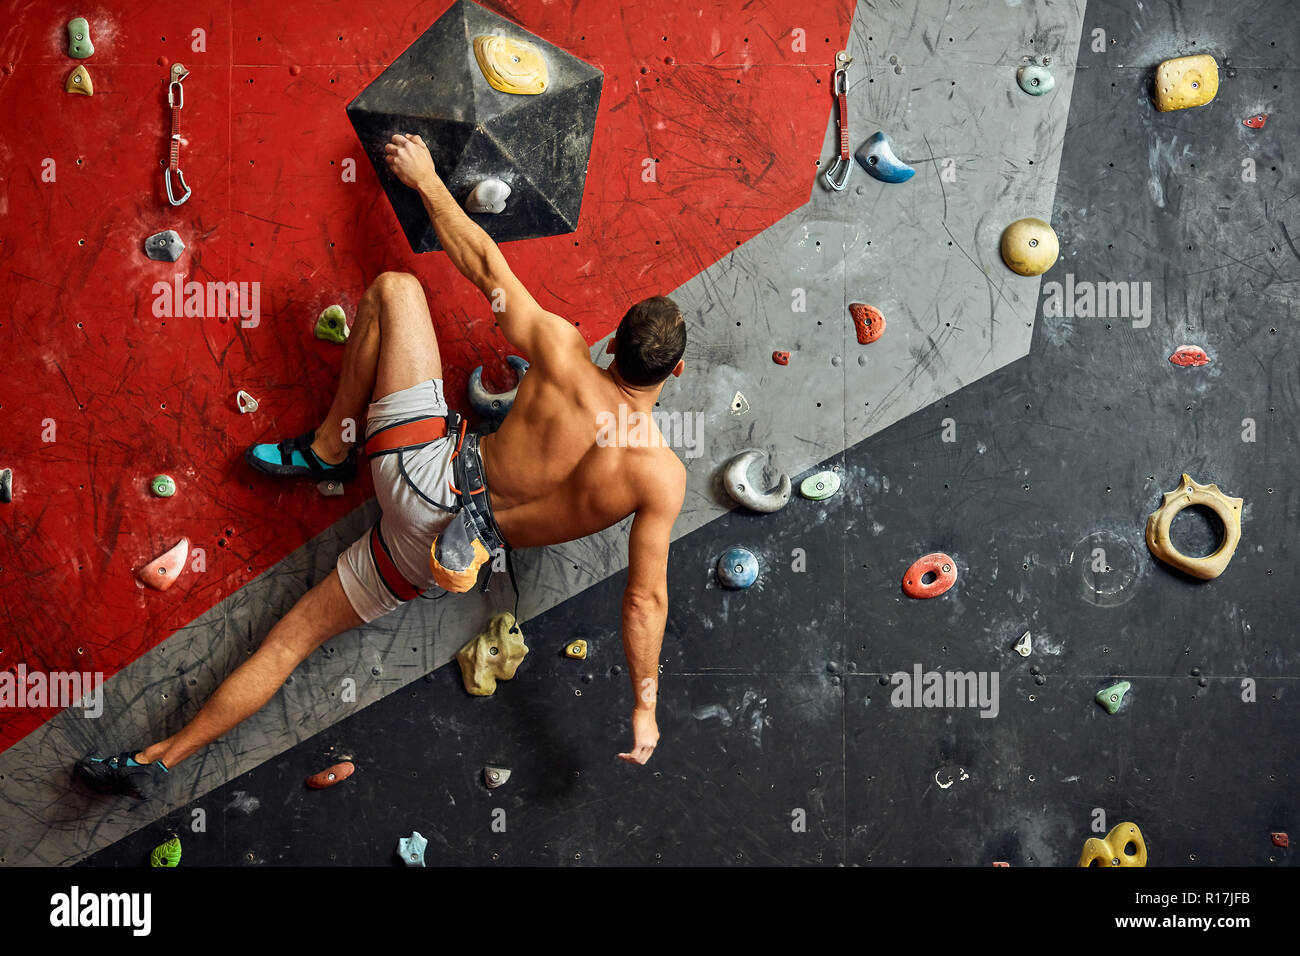 Male professional climber at indoor workout at bouldering centre. Stock Photo